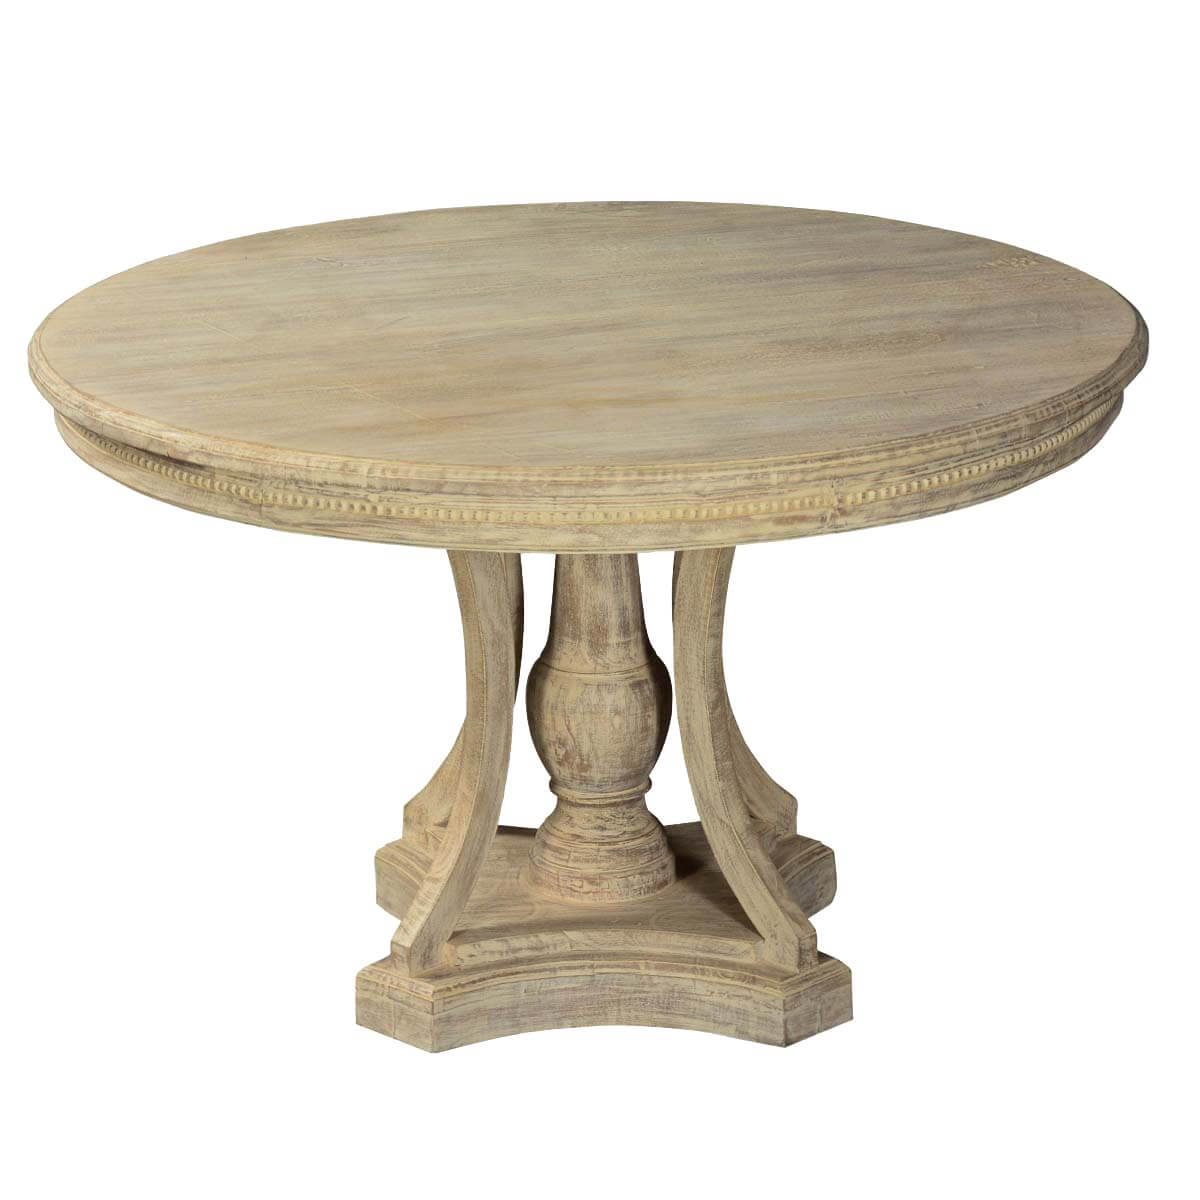 Whitewashed mango wood 47 round pedestal dining table for Pedestal dining table